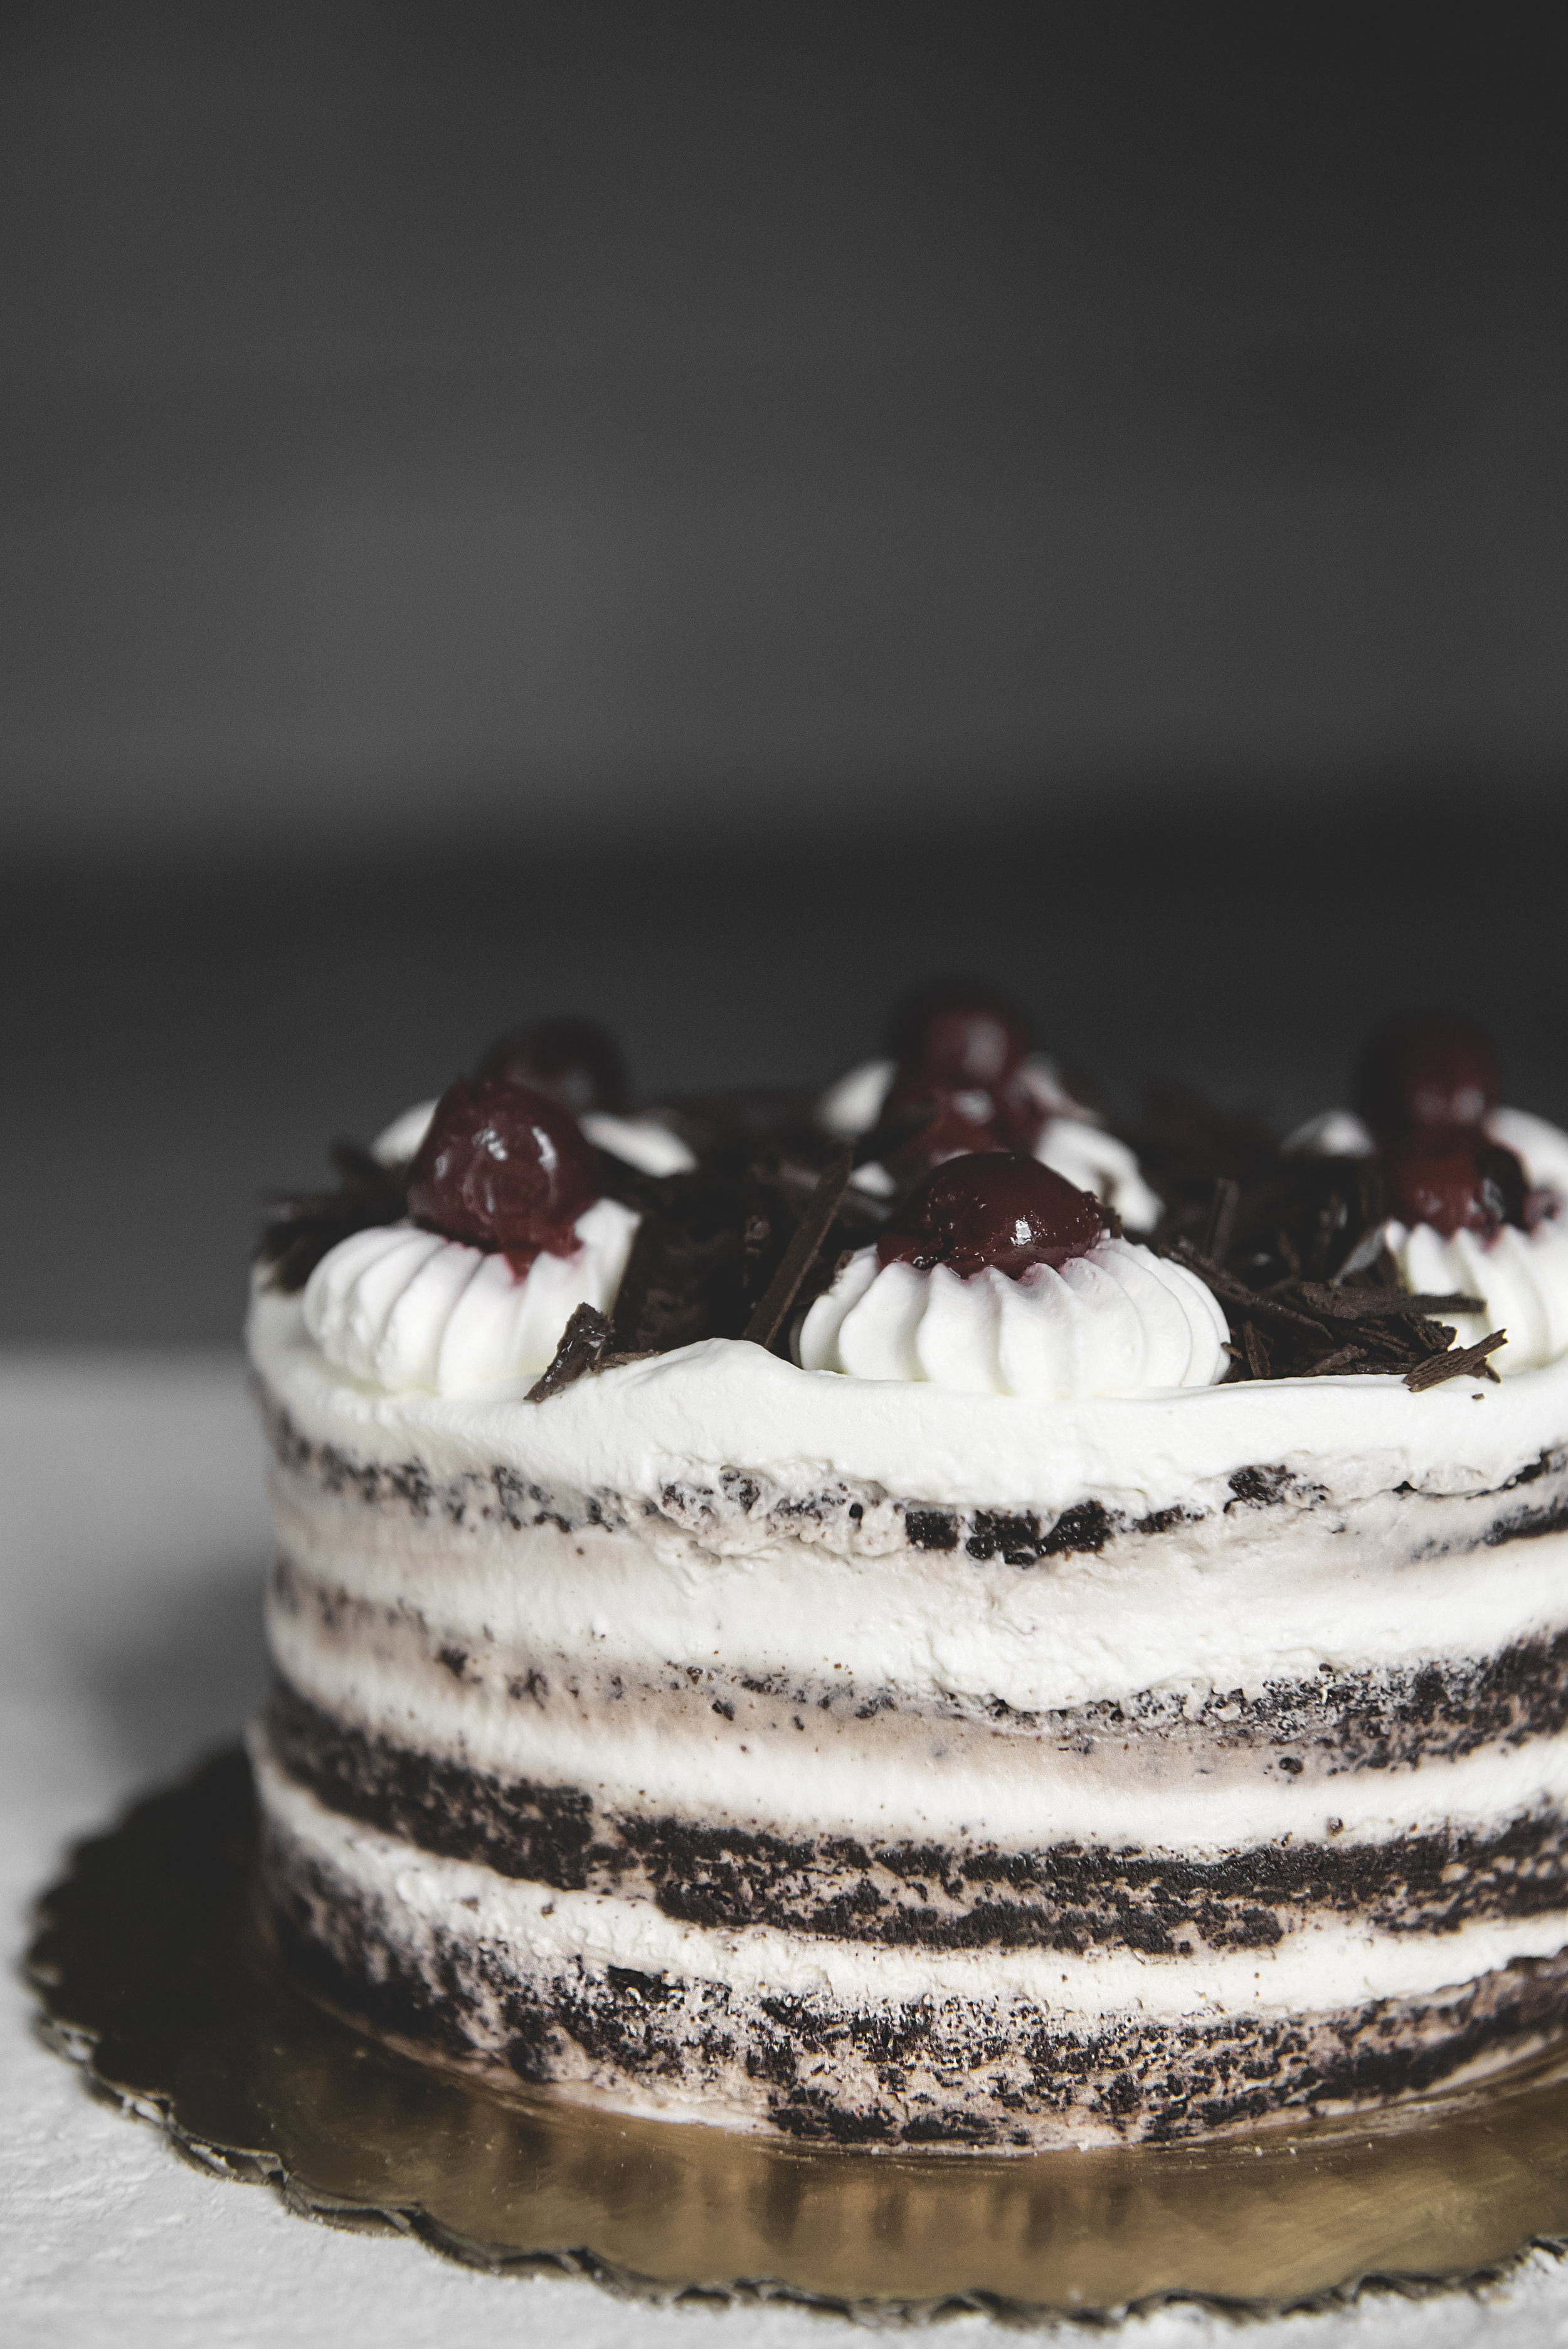 Black Forest Cake - Get lost in a classic. Rich chocolate cake, kirsch cream, & candied cherries.